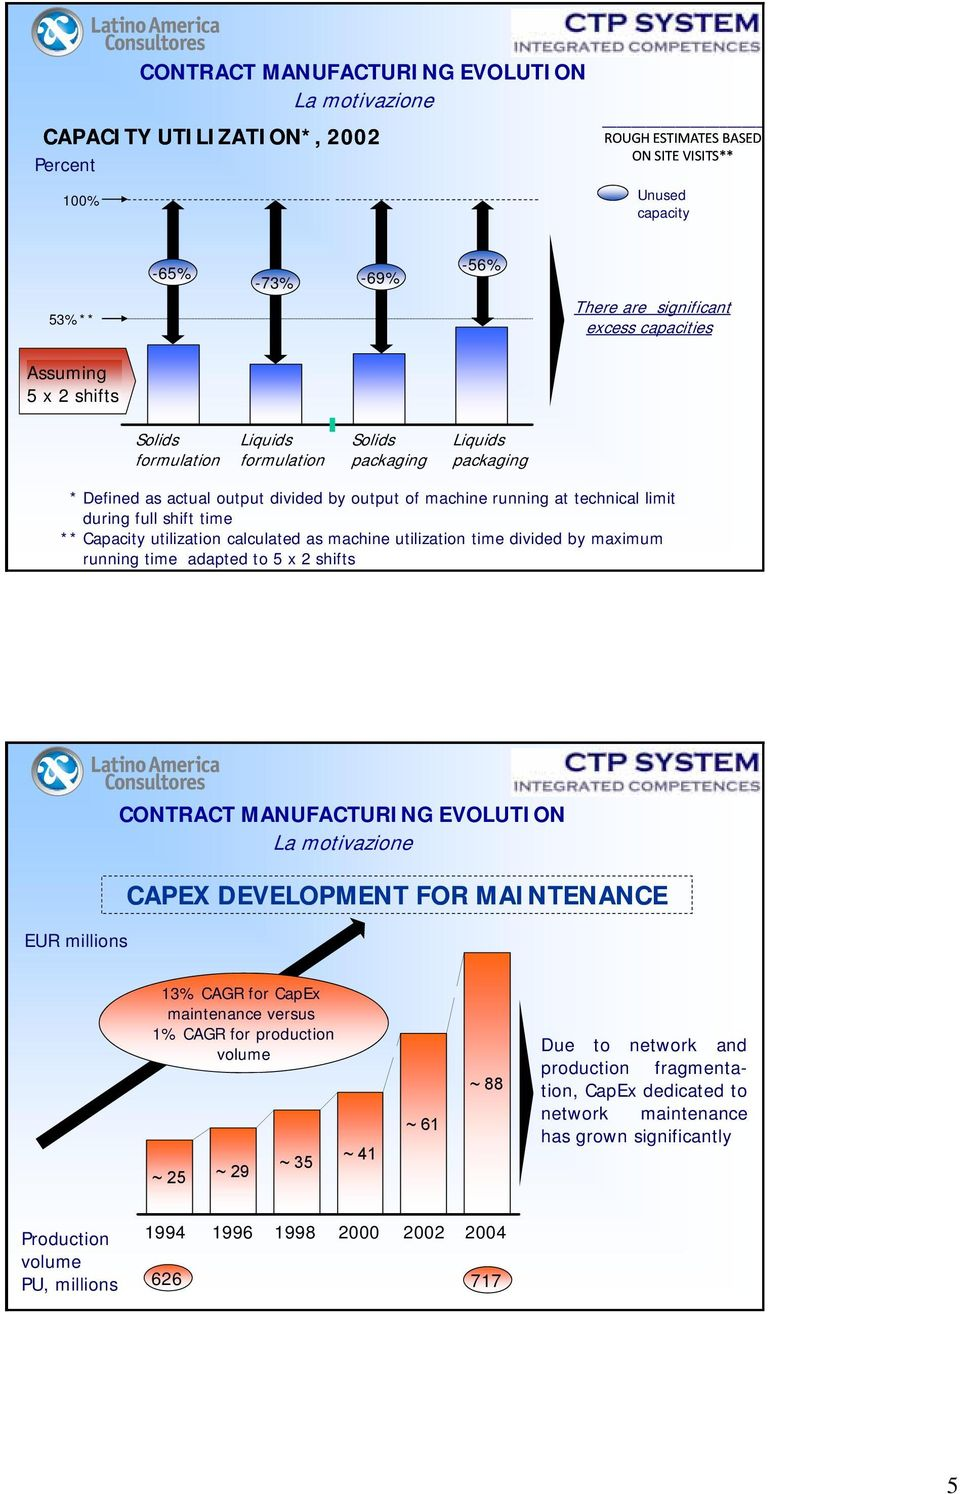 utilization calculated as machine utilization time divided by maximum running time adapted to 5 x 2 shifts EUR millions La motivazione CAPEX DEVELOPMENT FOR MAINTENANCE 13% CAGR for CapEx maintenance